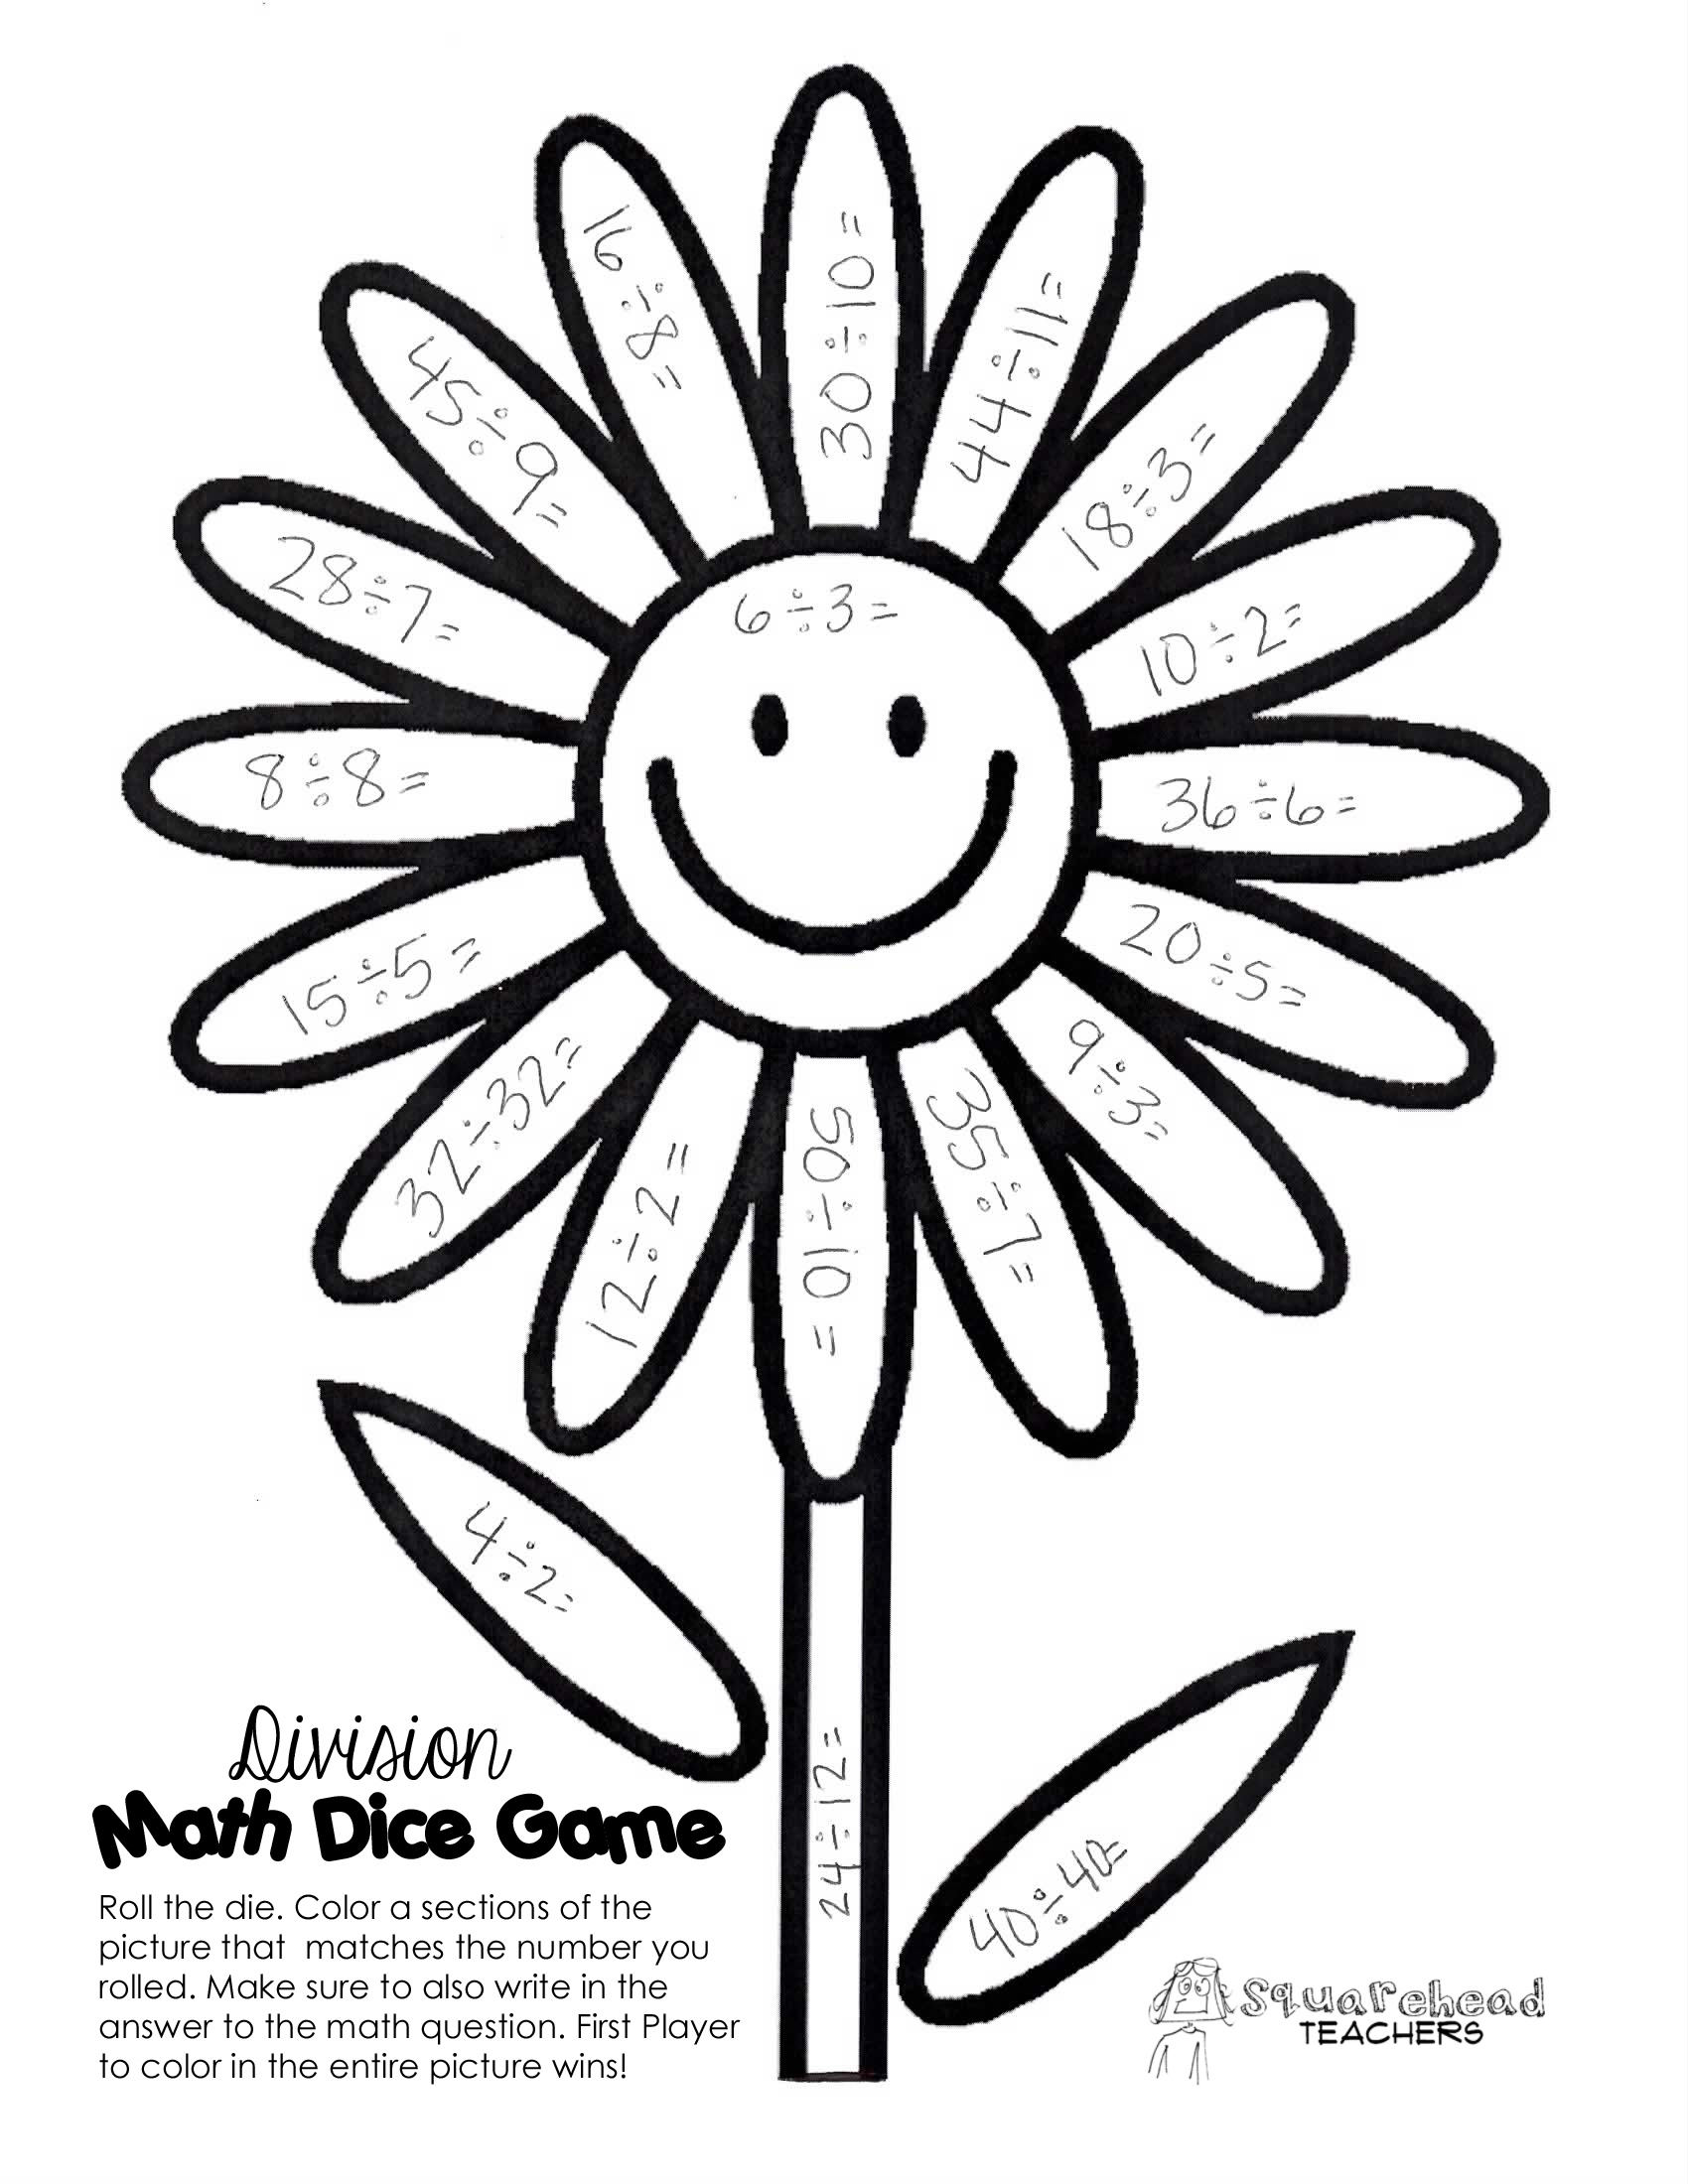 Division Coloring Worksheets For 3rd Grade: Get free rd grade math ...